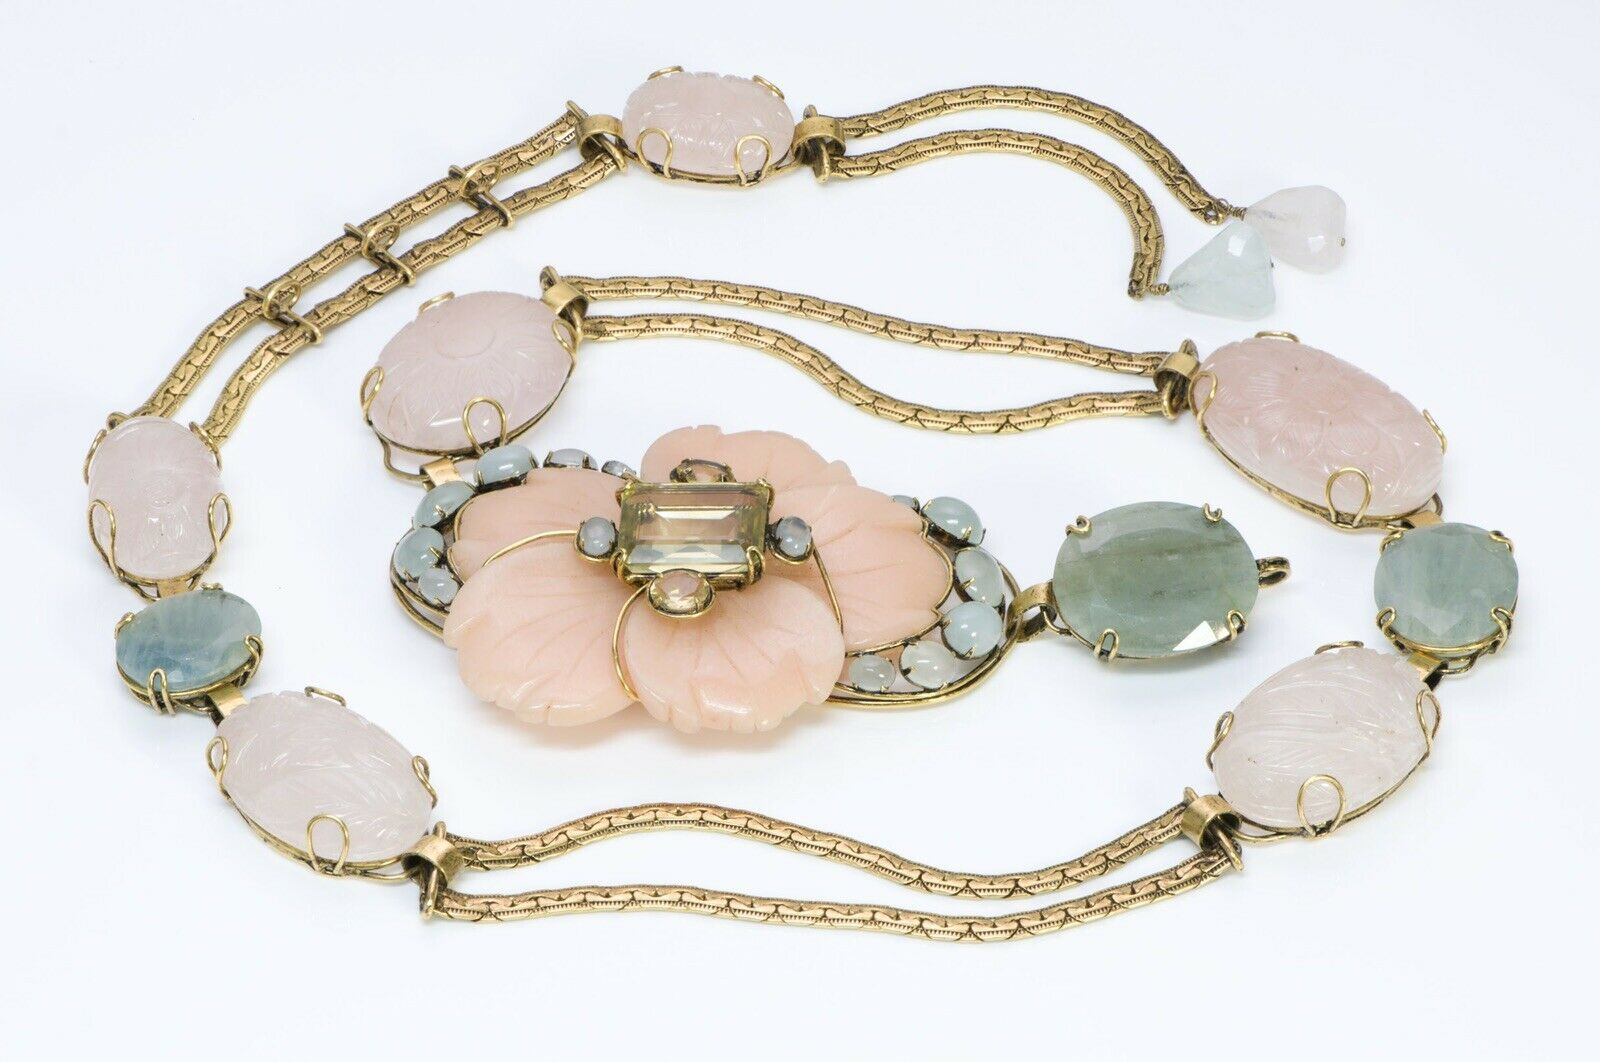 iradj-moini-agate-flower-carved-semiprecious-stone-chain-belt